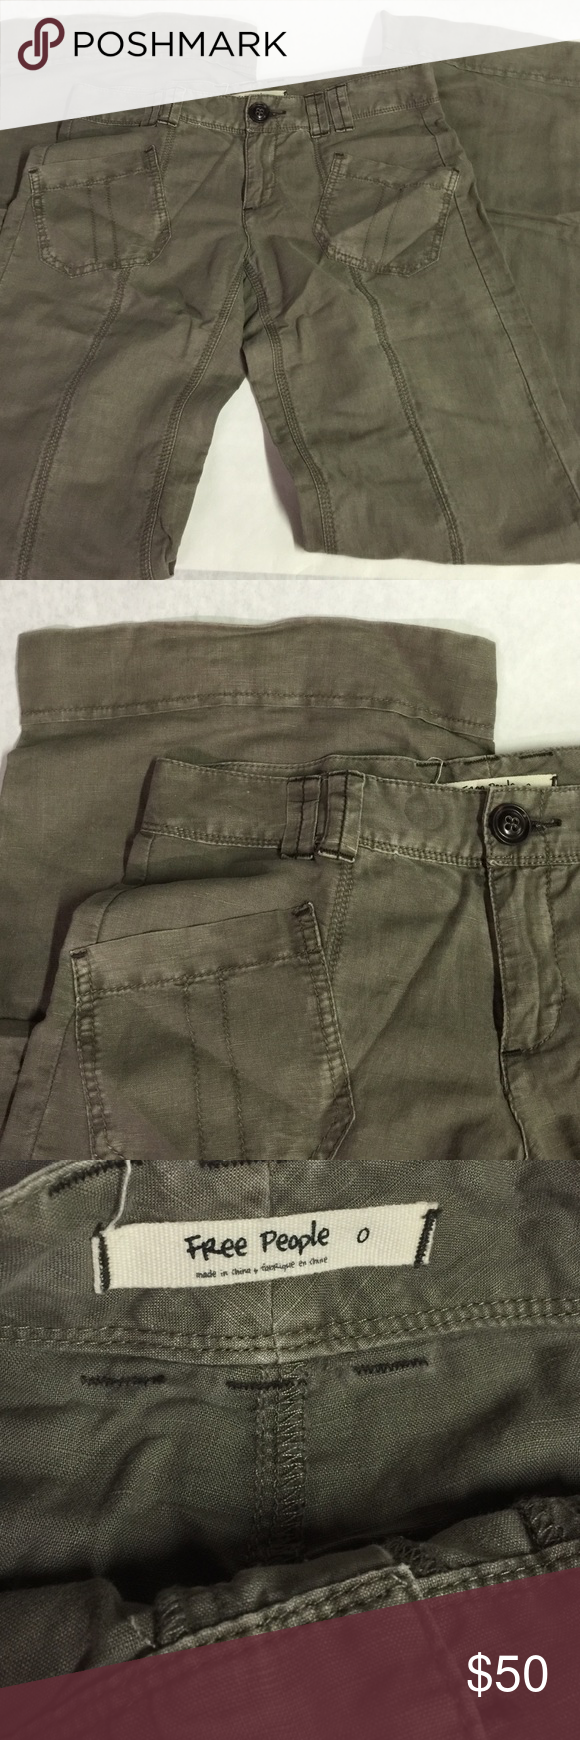 Free People pants Free People pants. Great condition. Selling for a friend. Army green or so in color. Linen Cotton blend. Free People Pants Wide Leg